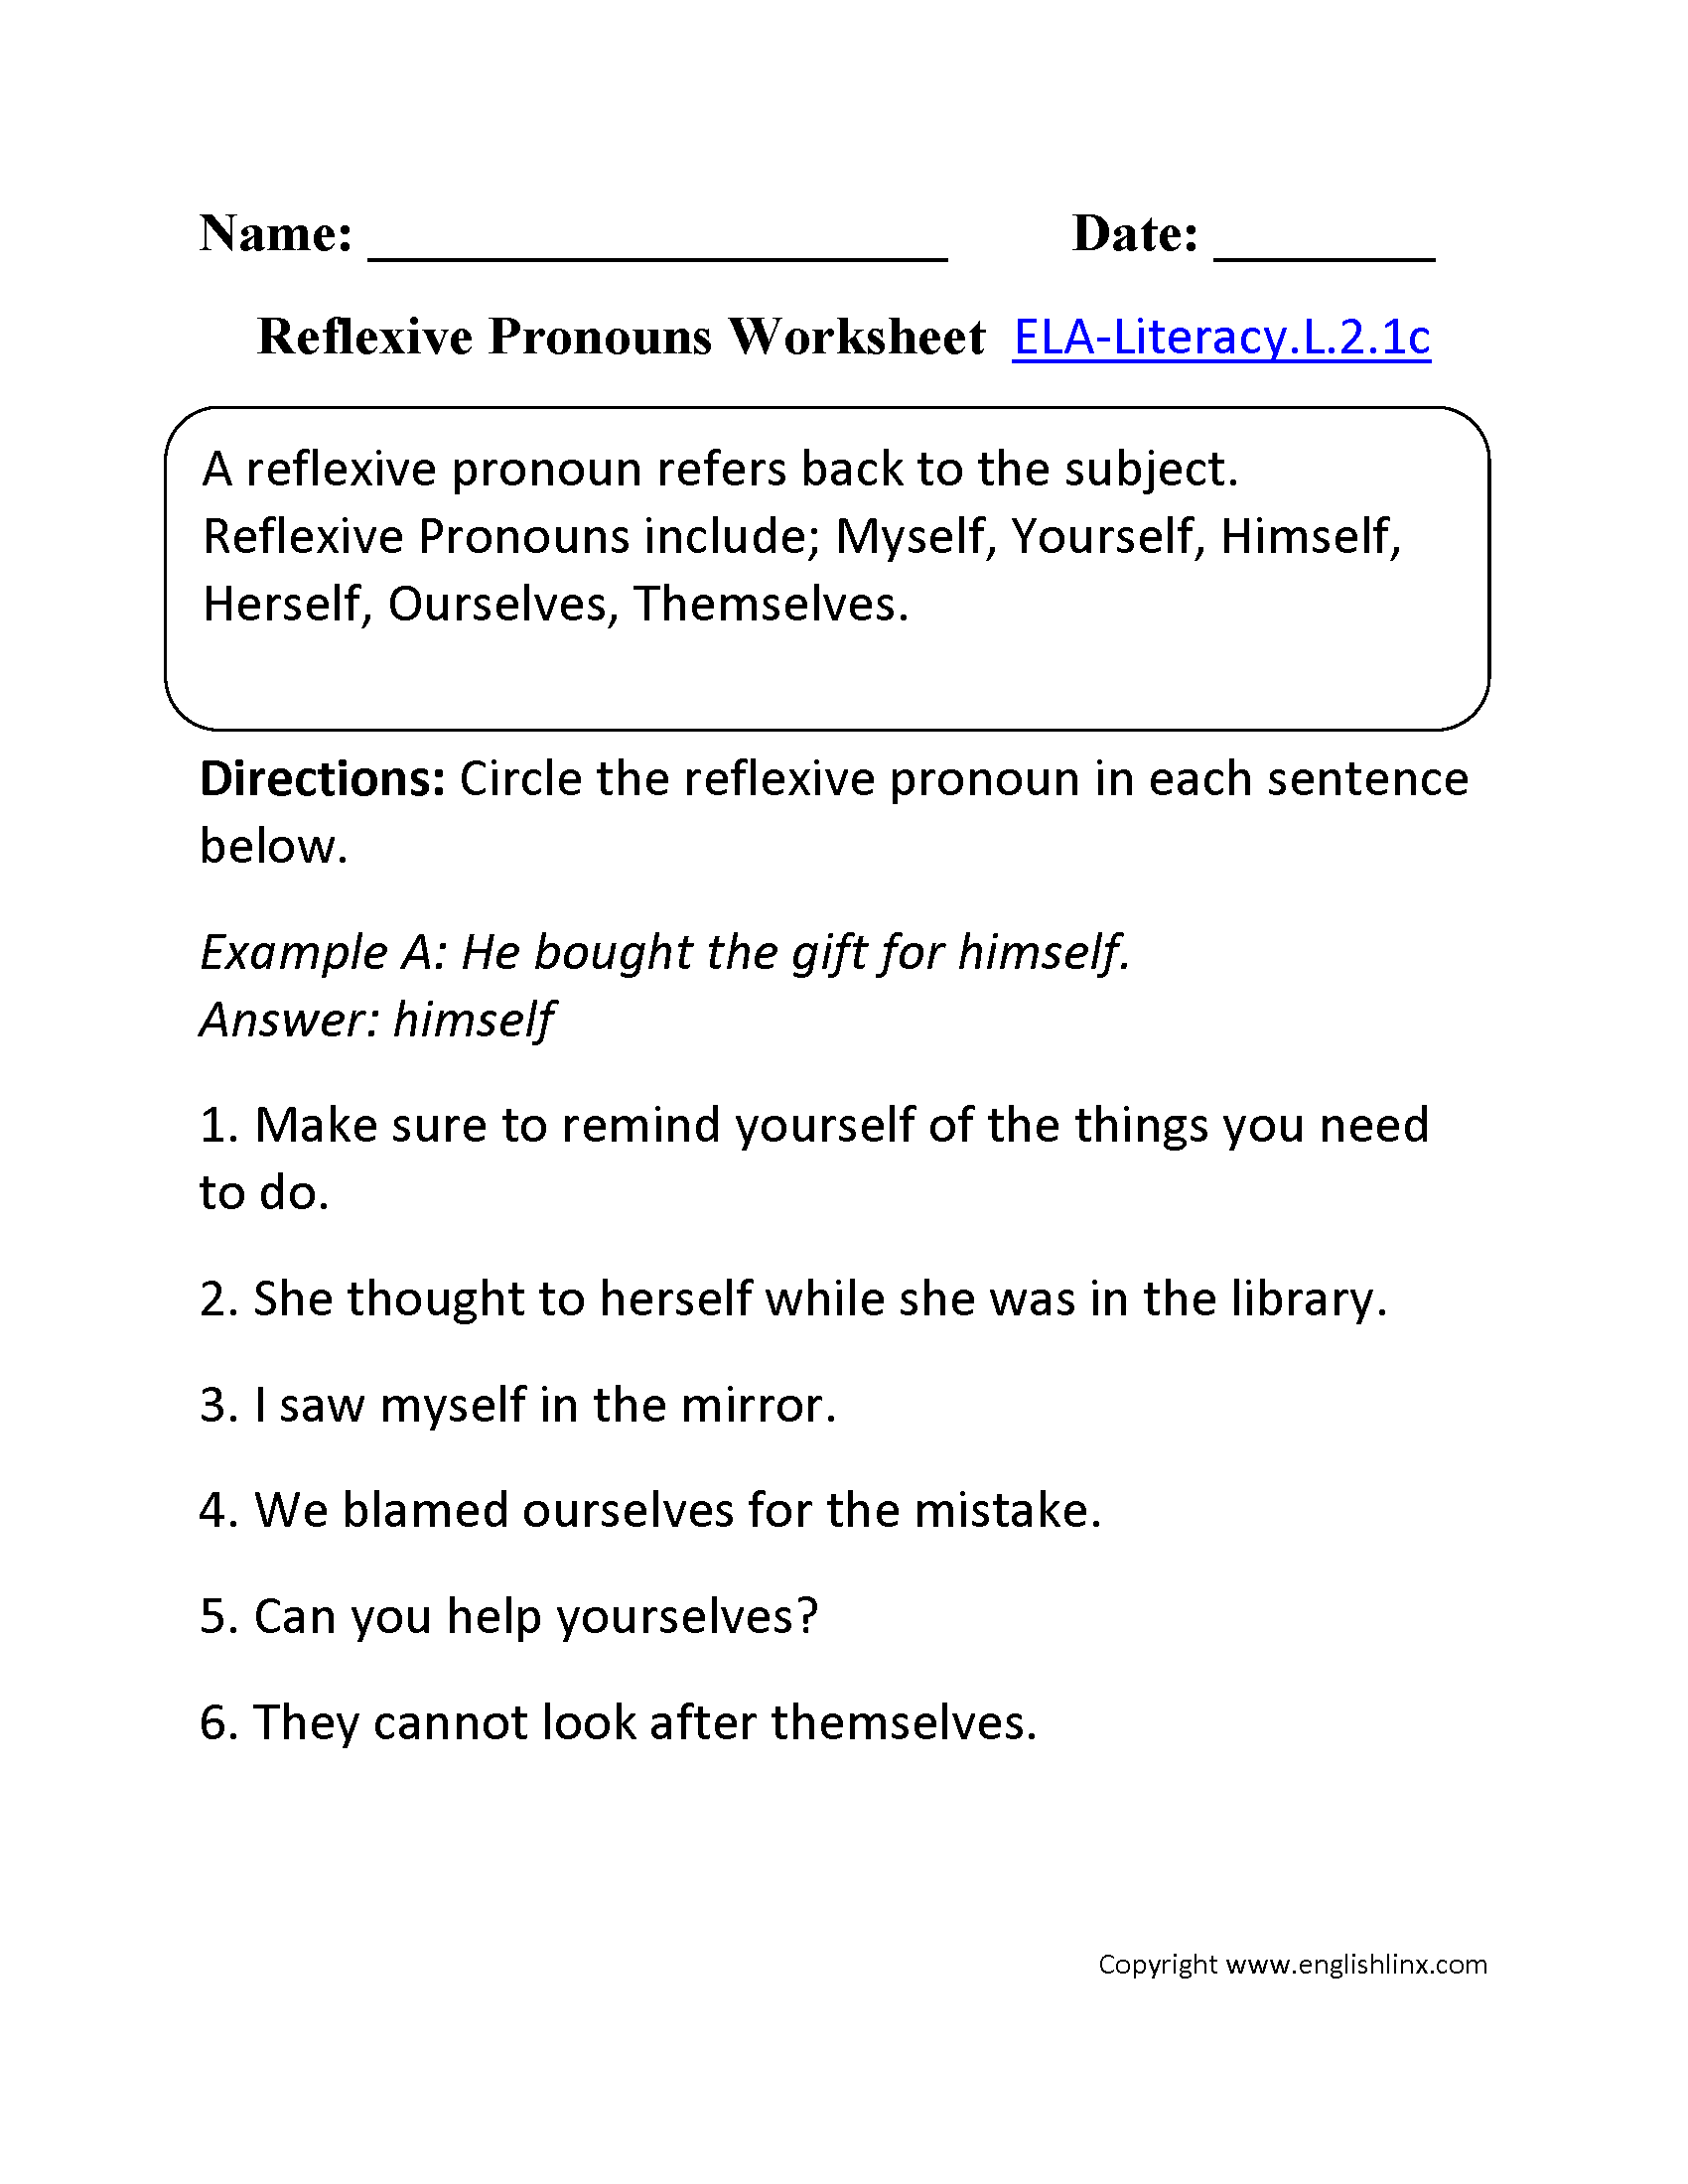 Reflexive Pronouns Worksheet 2 Ela Literacy L 2 1c